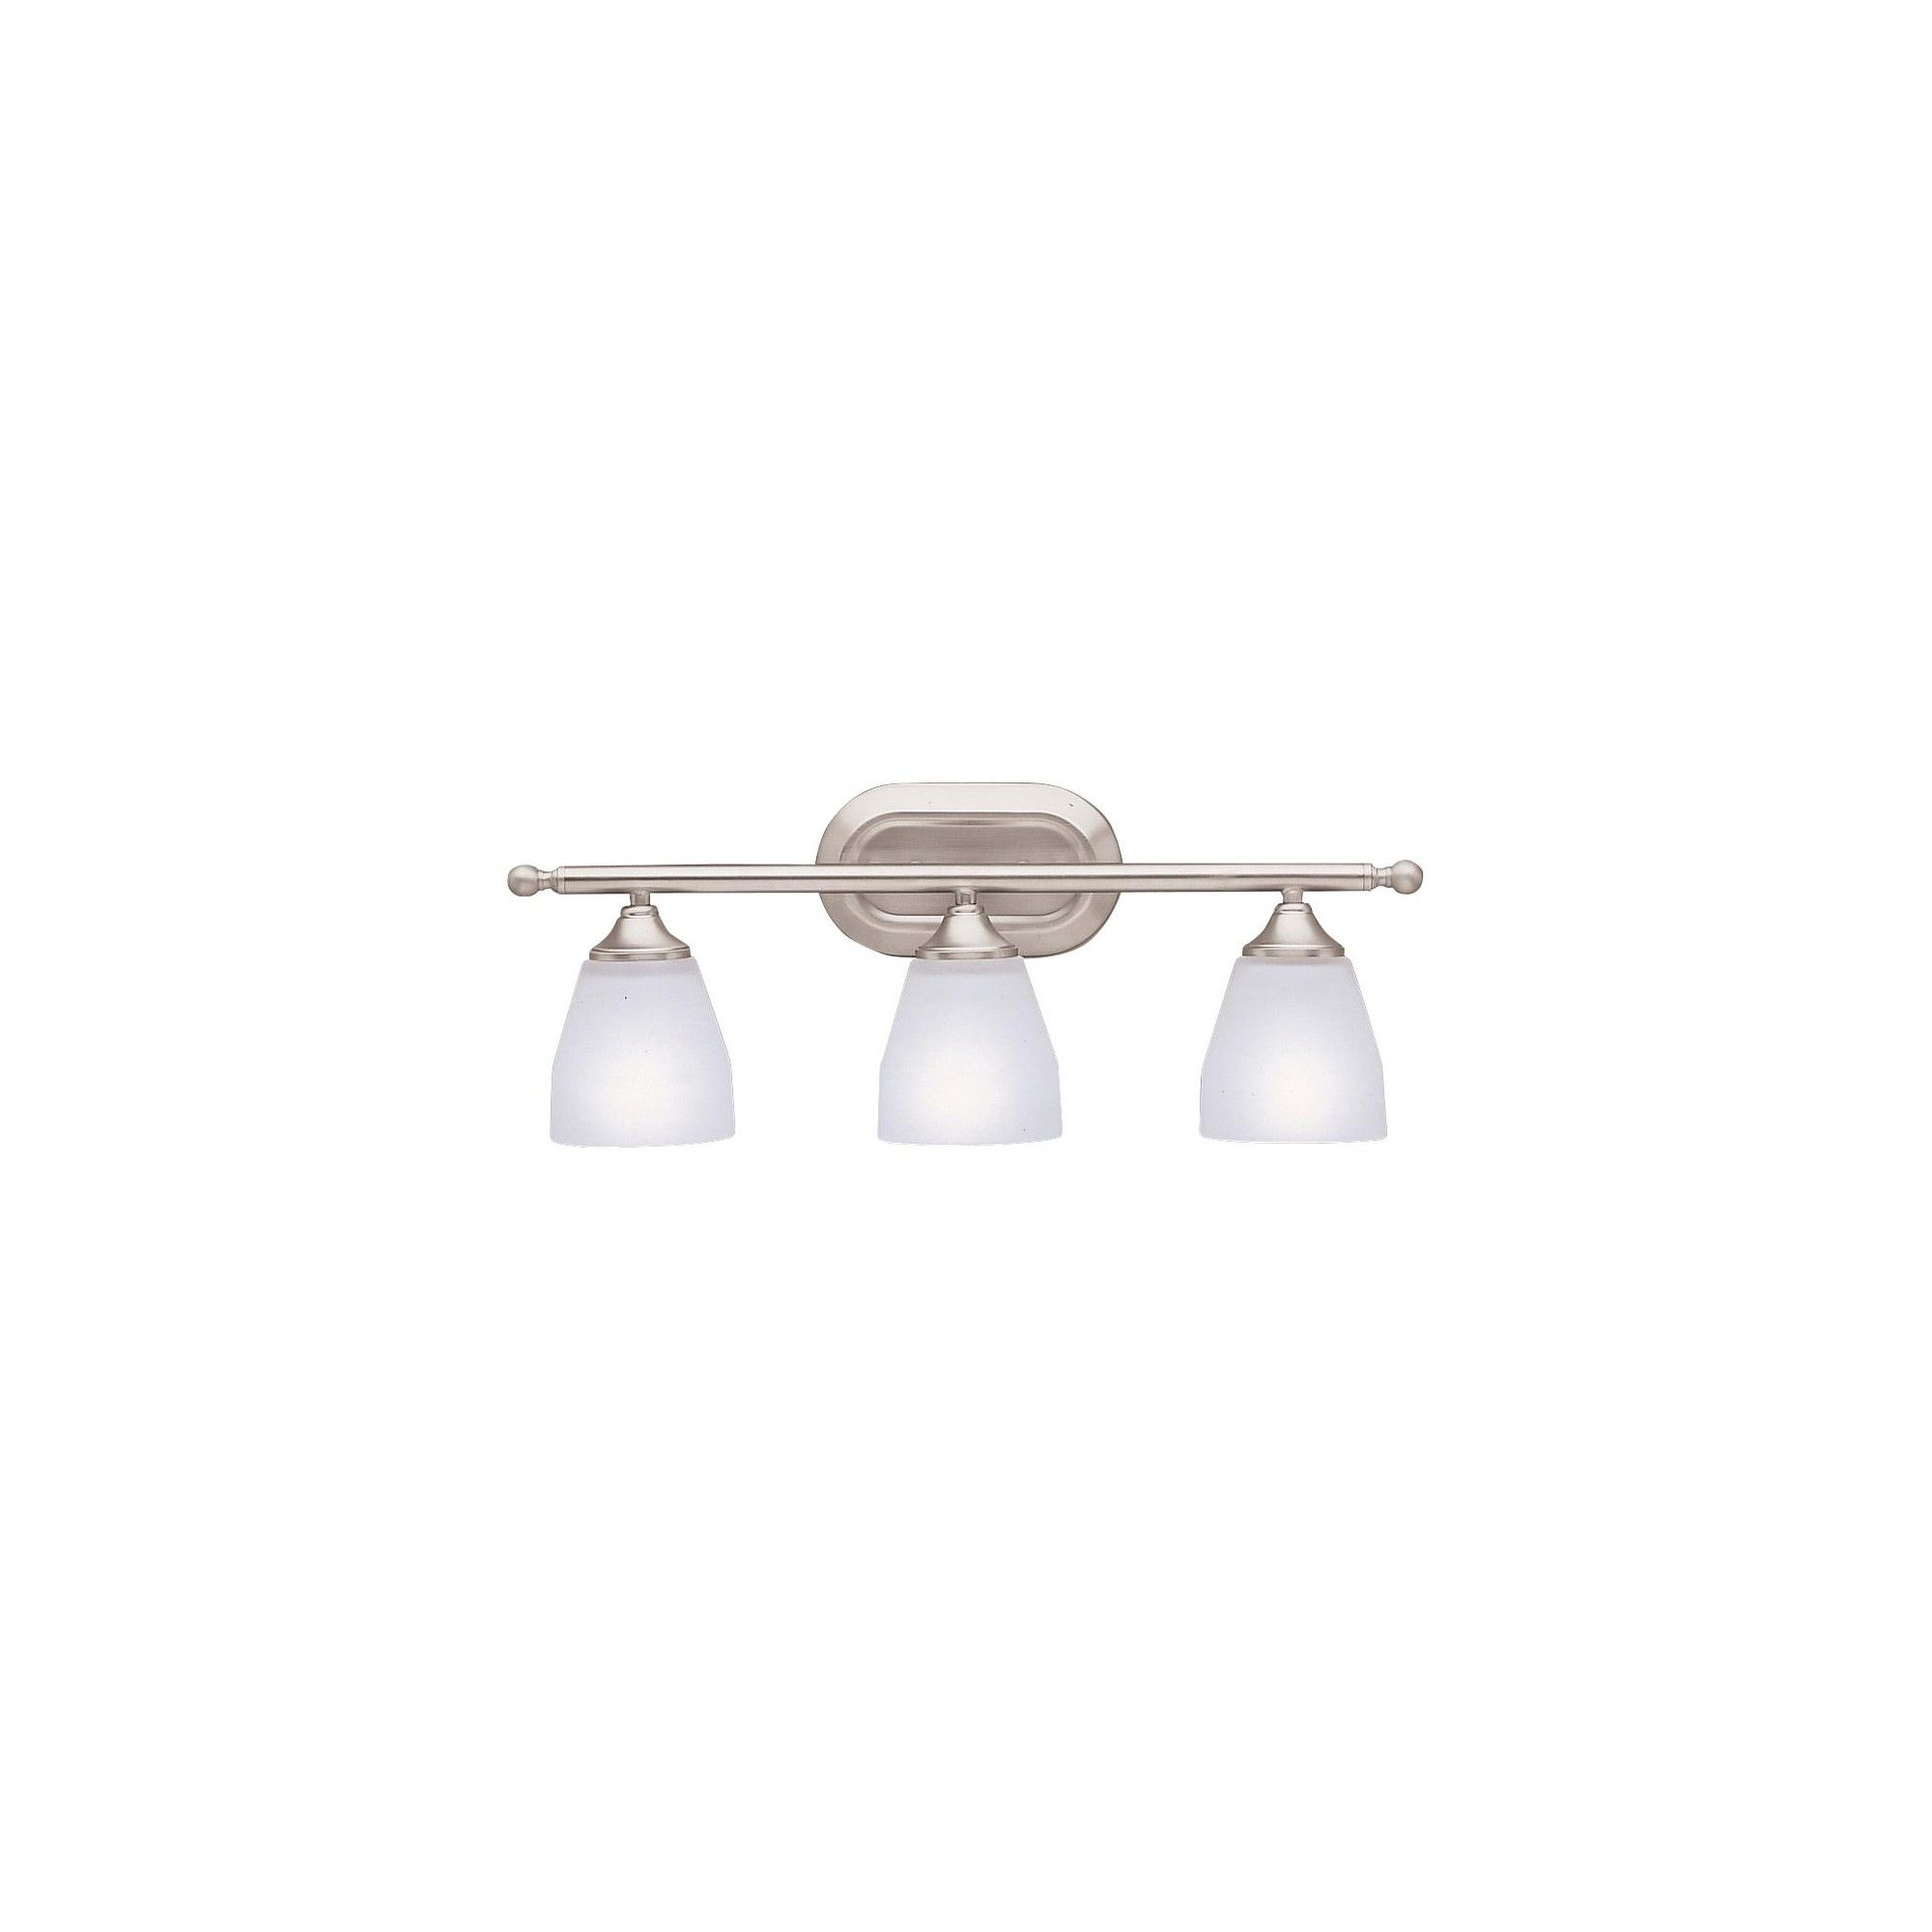 """Photo of Kichler 5448 Ansonia 3 Light 23 """"Wide Vanity Light bathroom tap with etched glass shades – brushed nickel"""